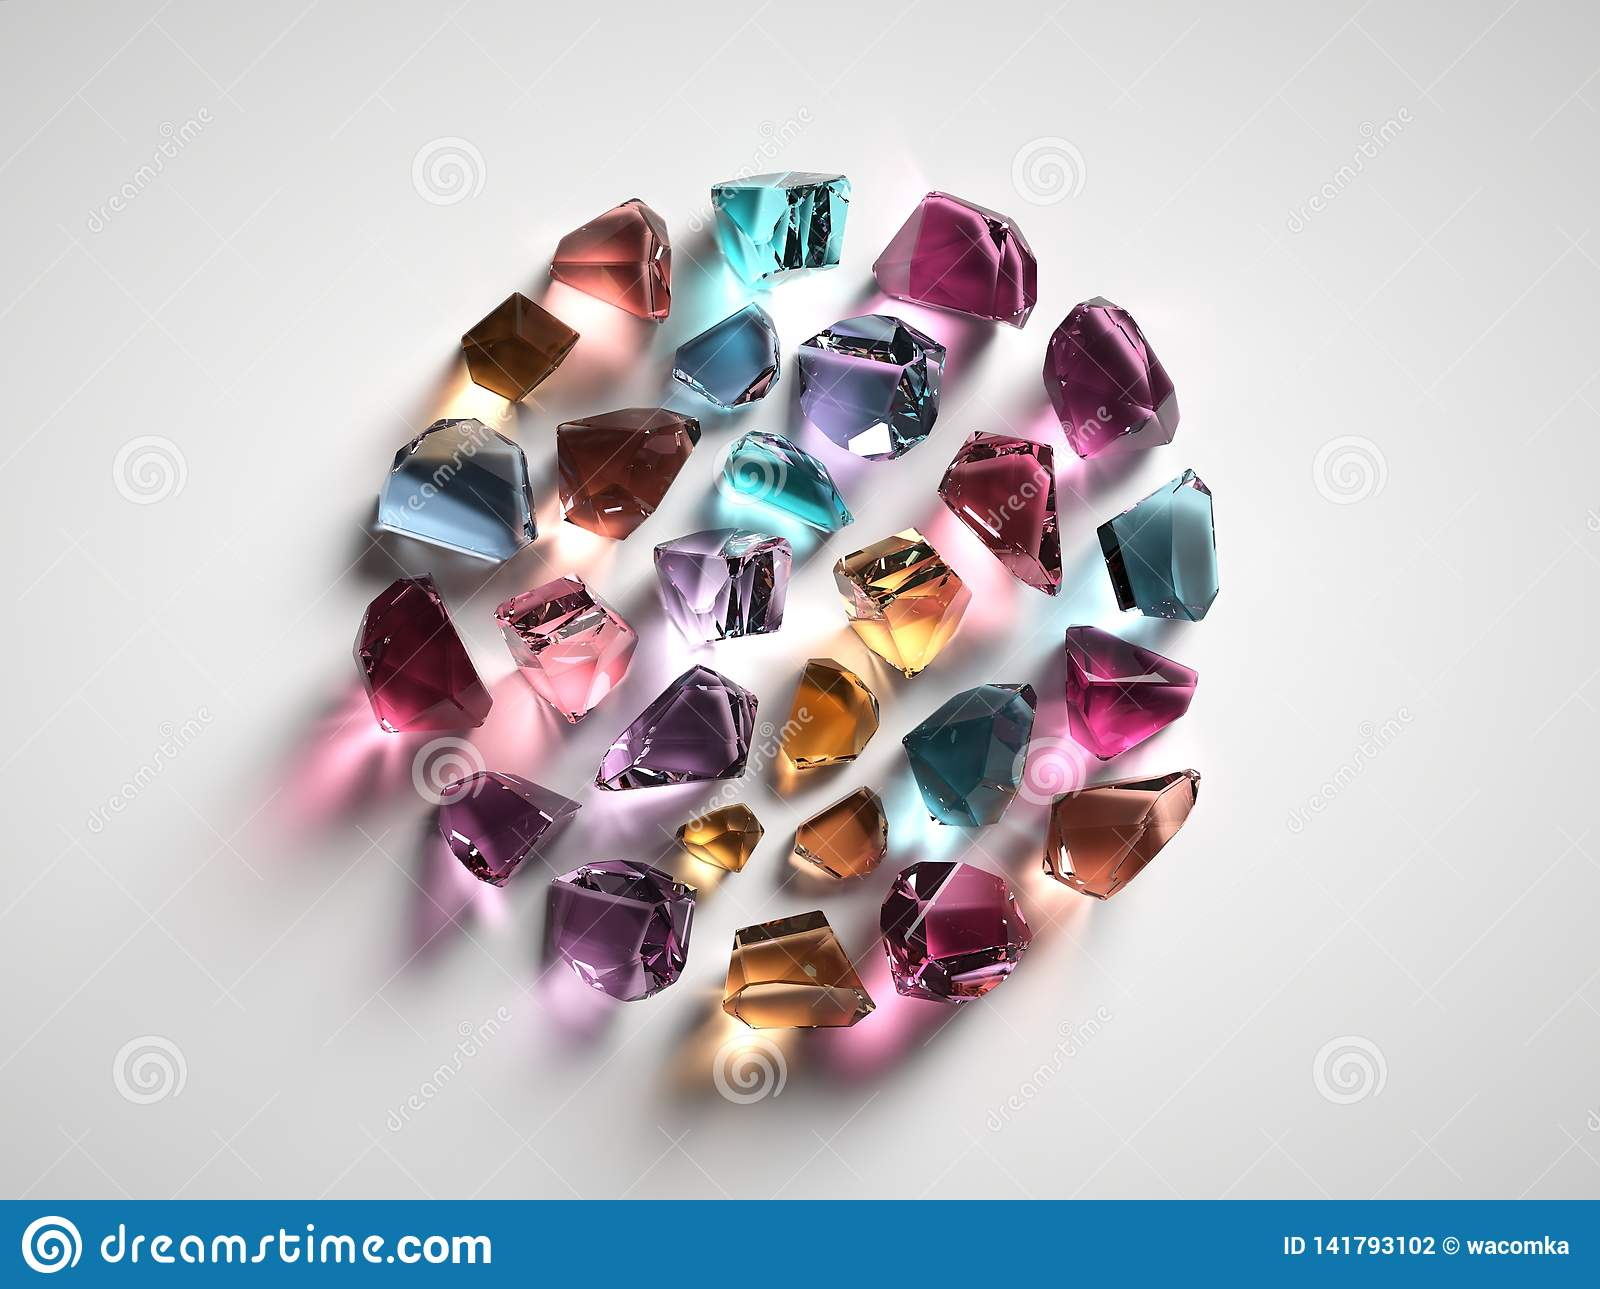 3d render, assorted colored spiritual crystals isolated on white background, gemstones, healing quartz, nuggets round shape